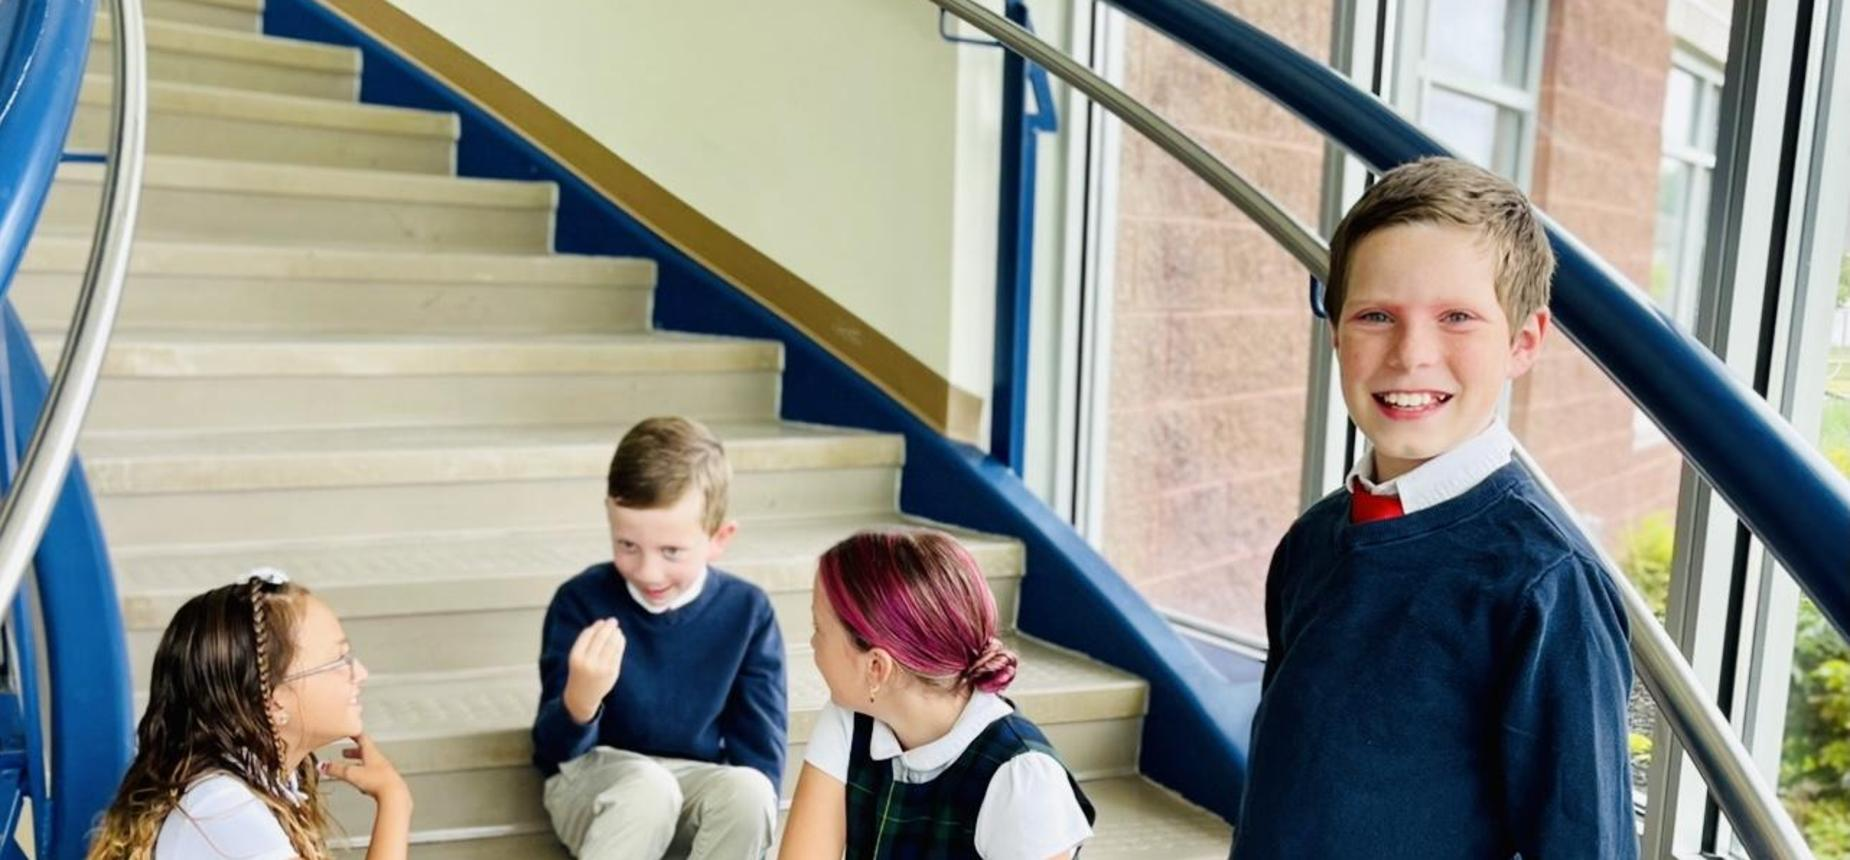 legacy prep best charter school in davis county, students on staircase